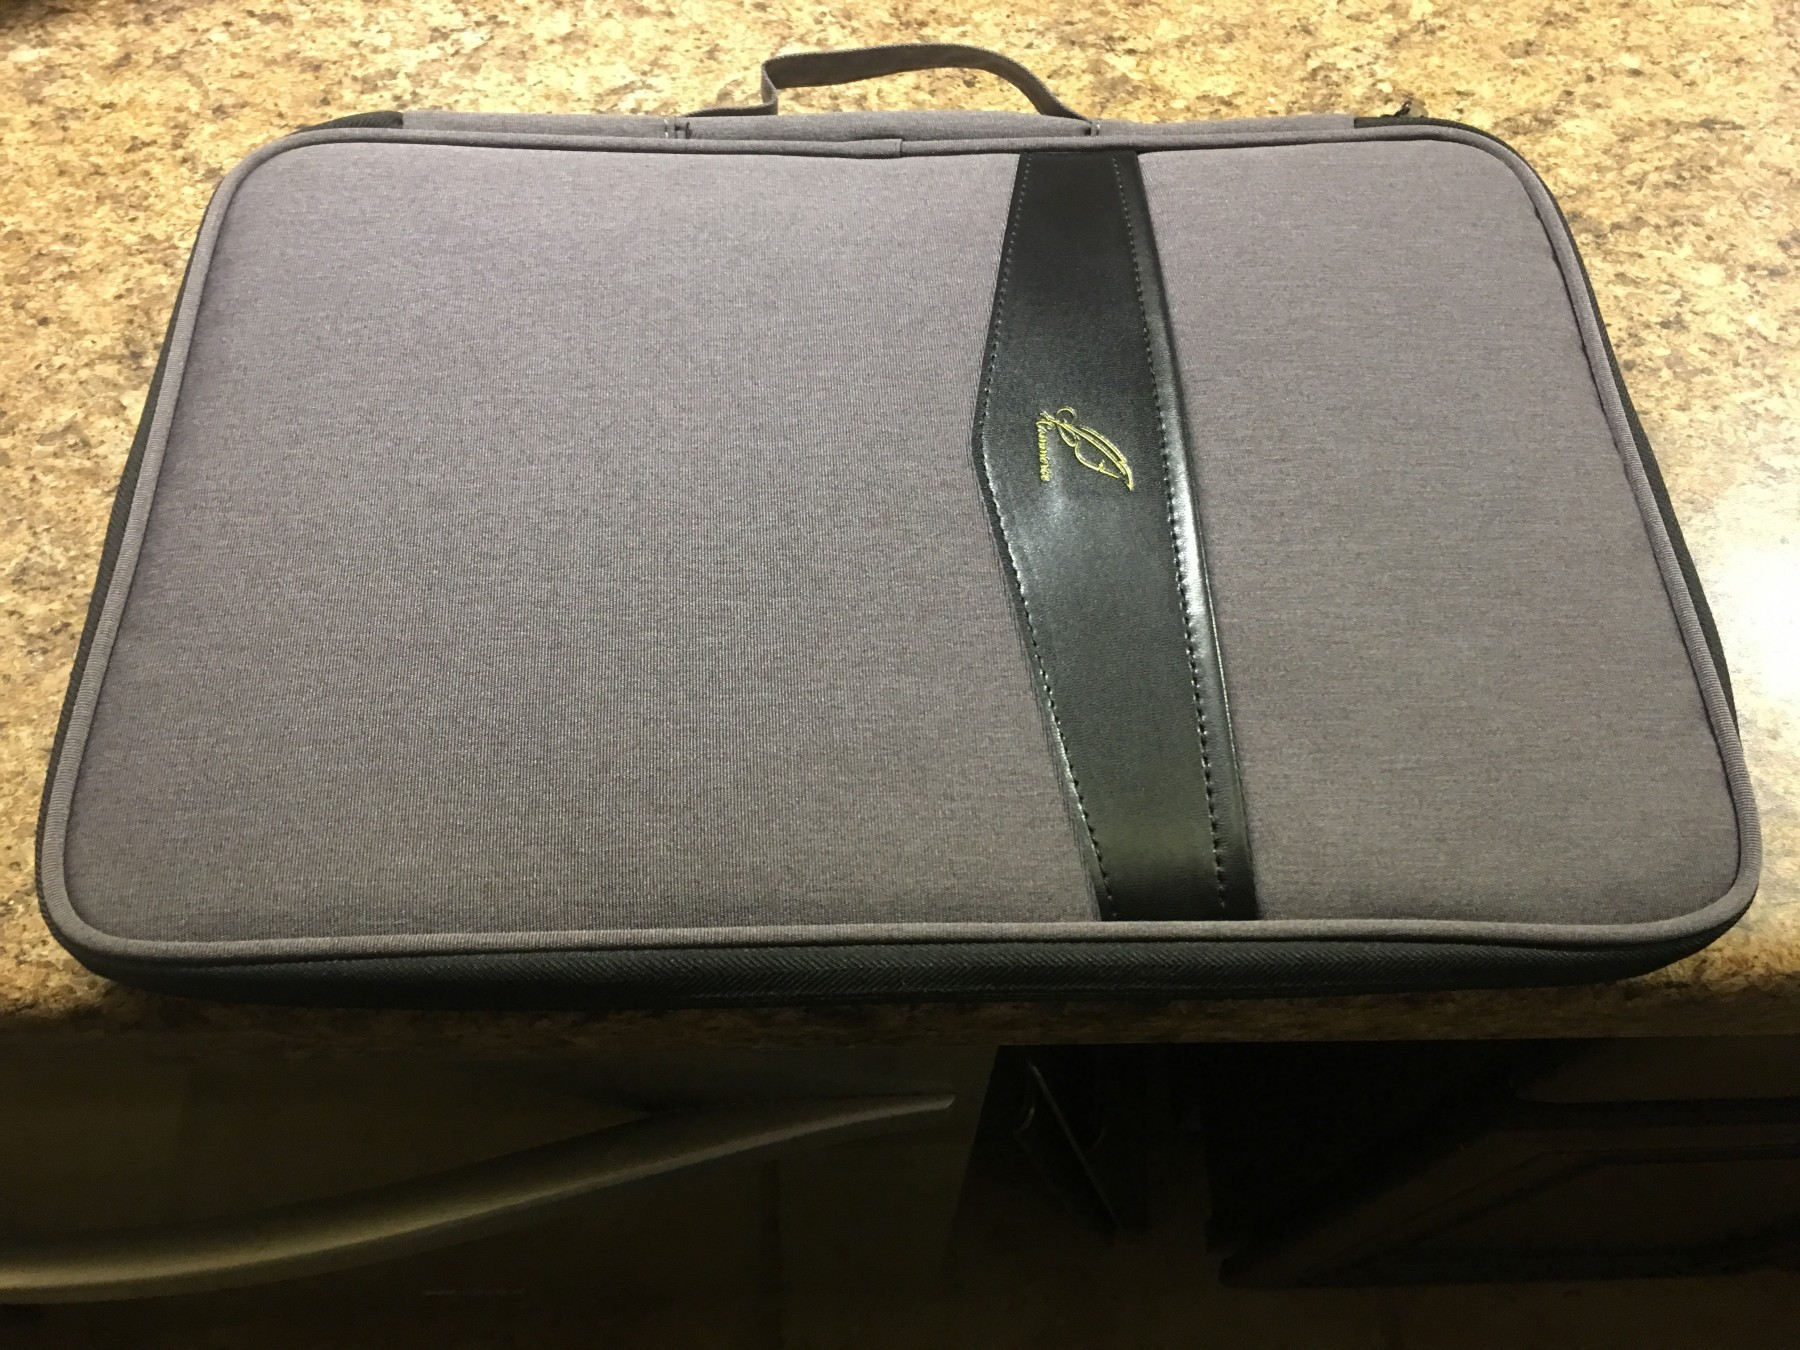 Nice carrying case for your tablet